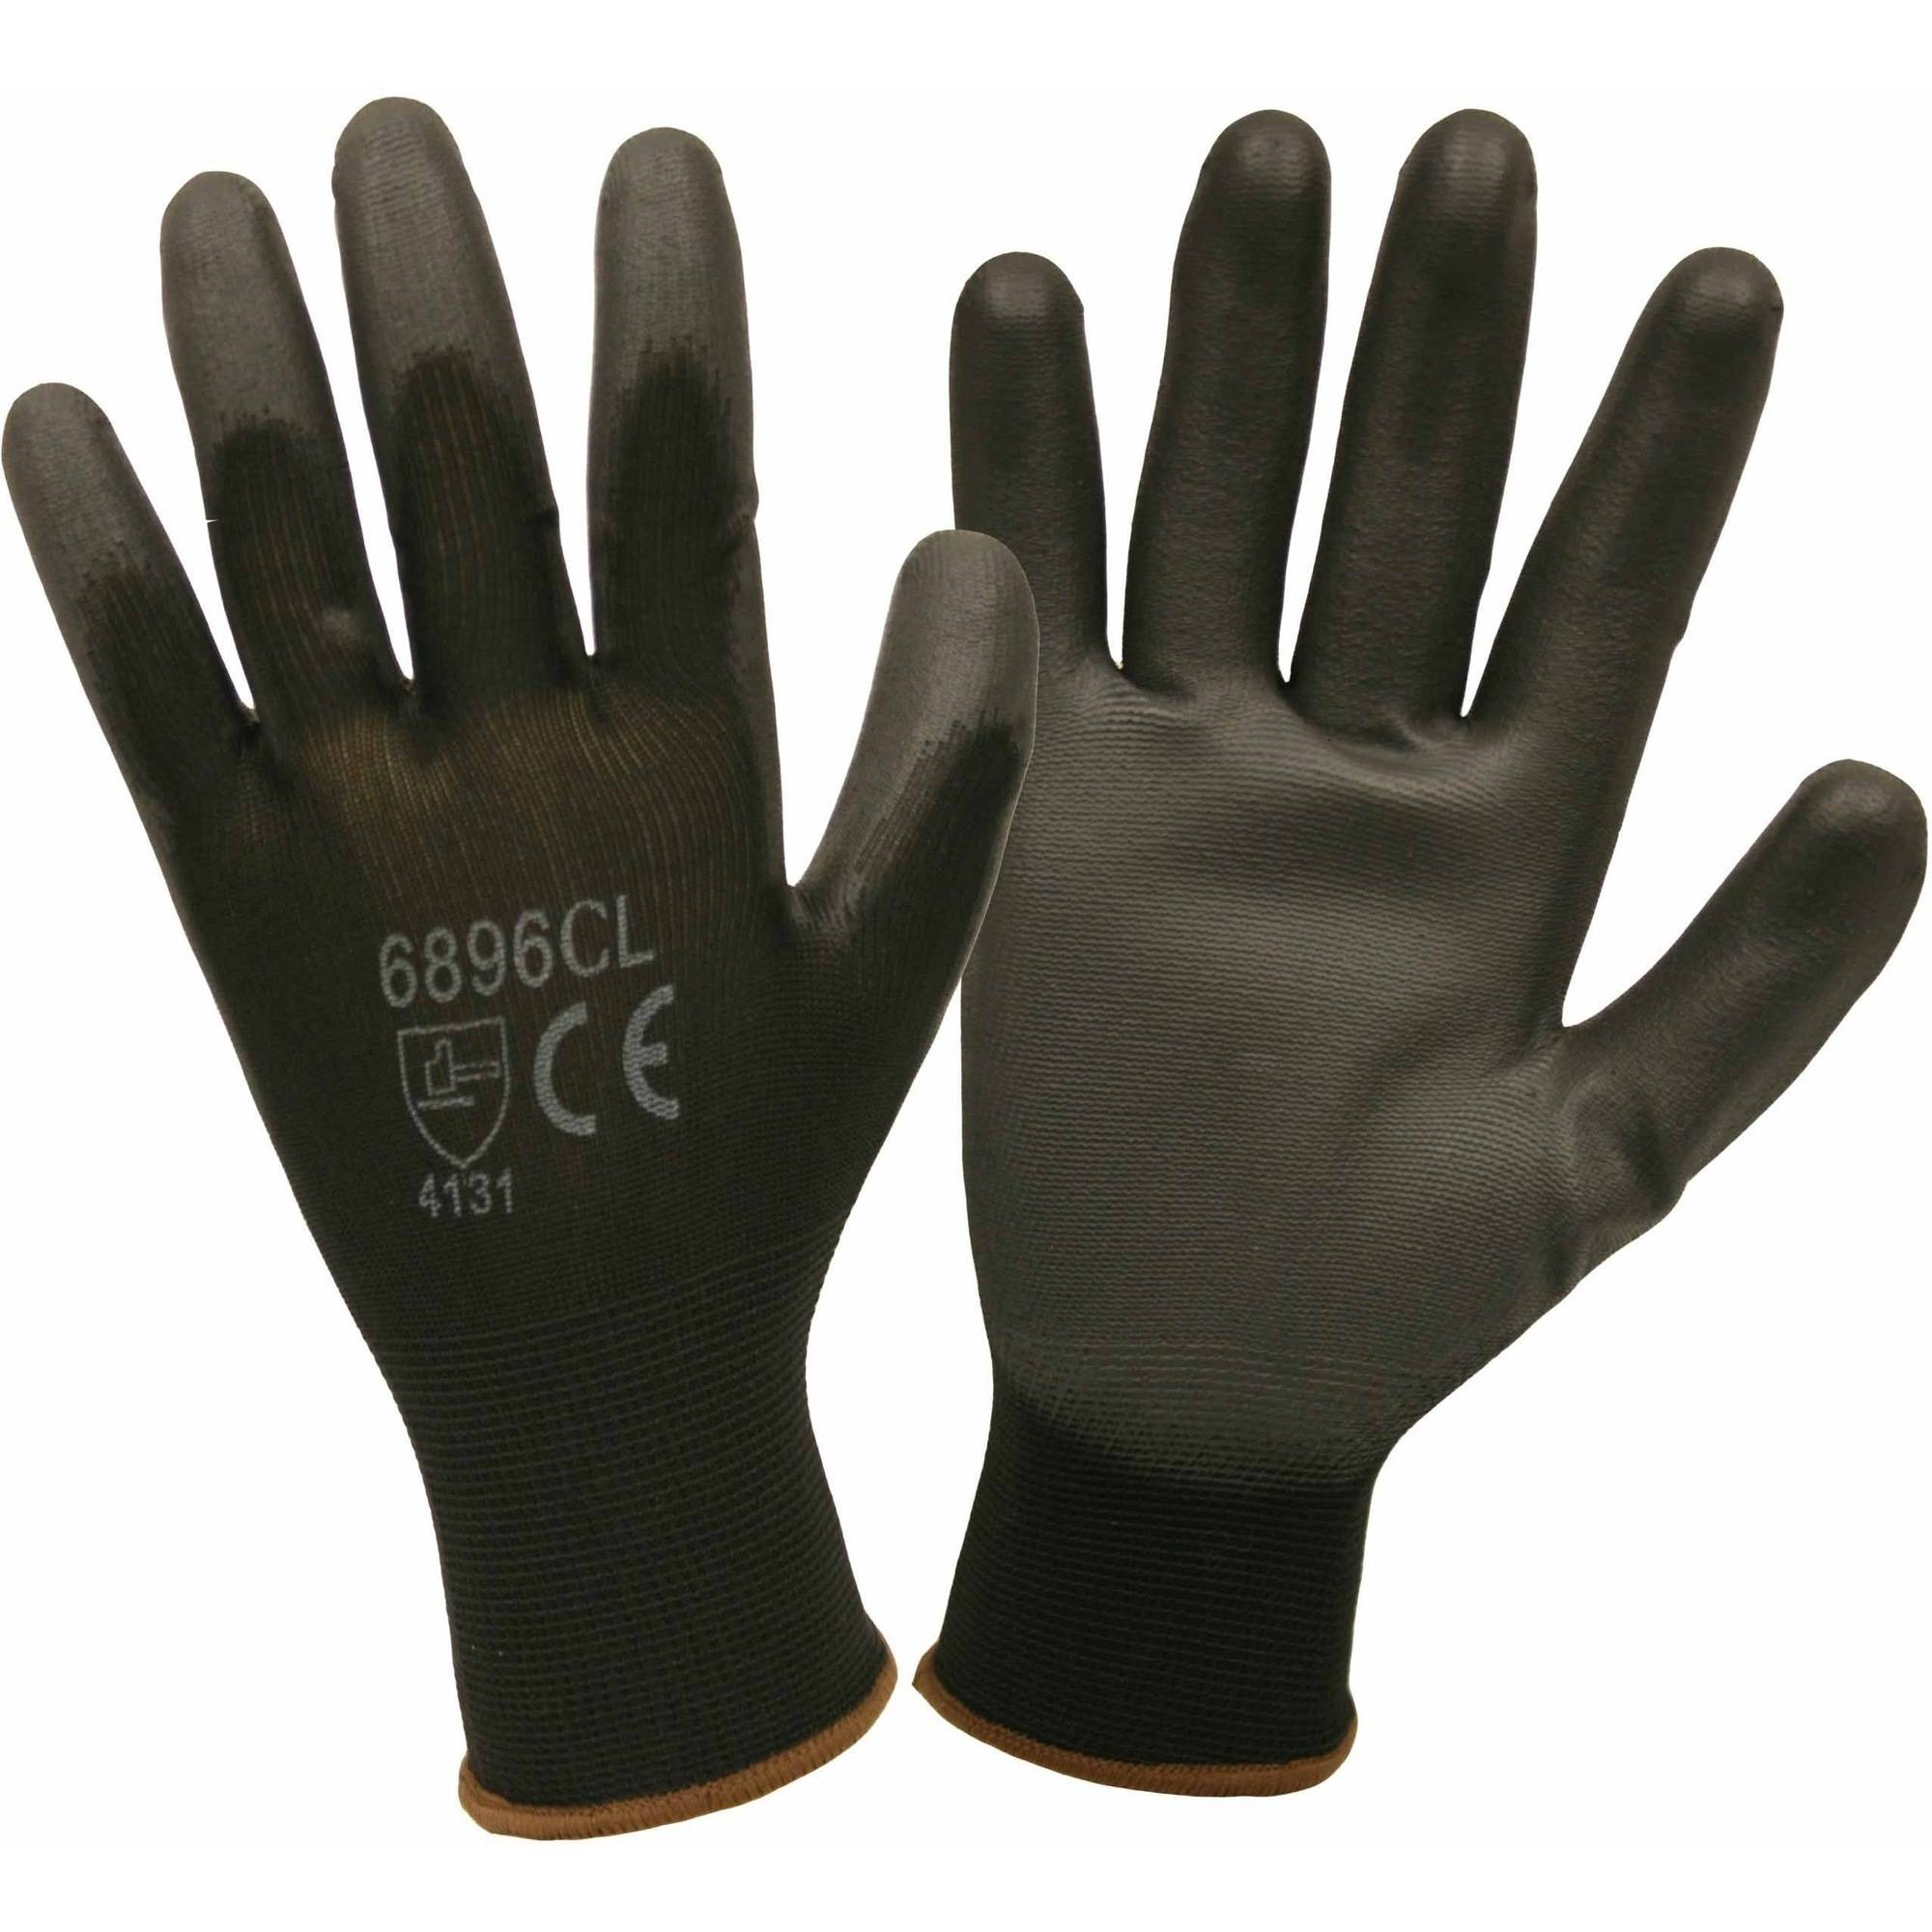 Black Nylon Work Gloves with a Polyurethane Coating, Pack of 12 Pairs